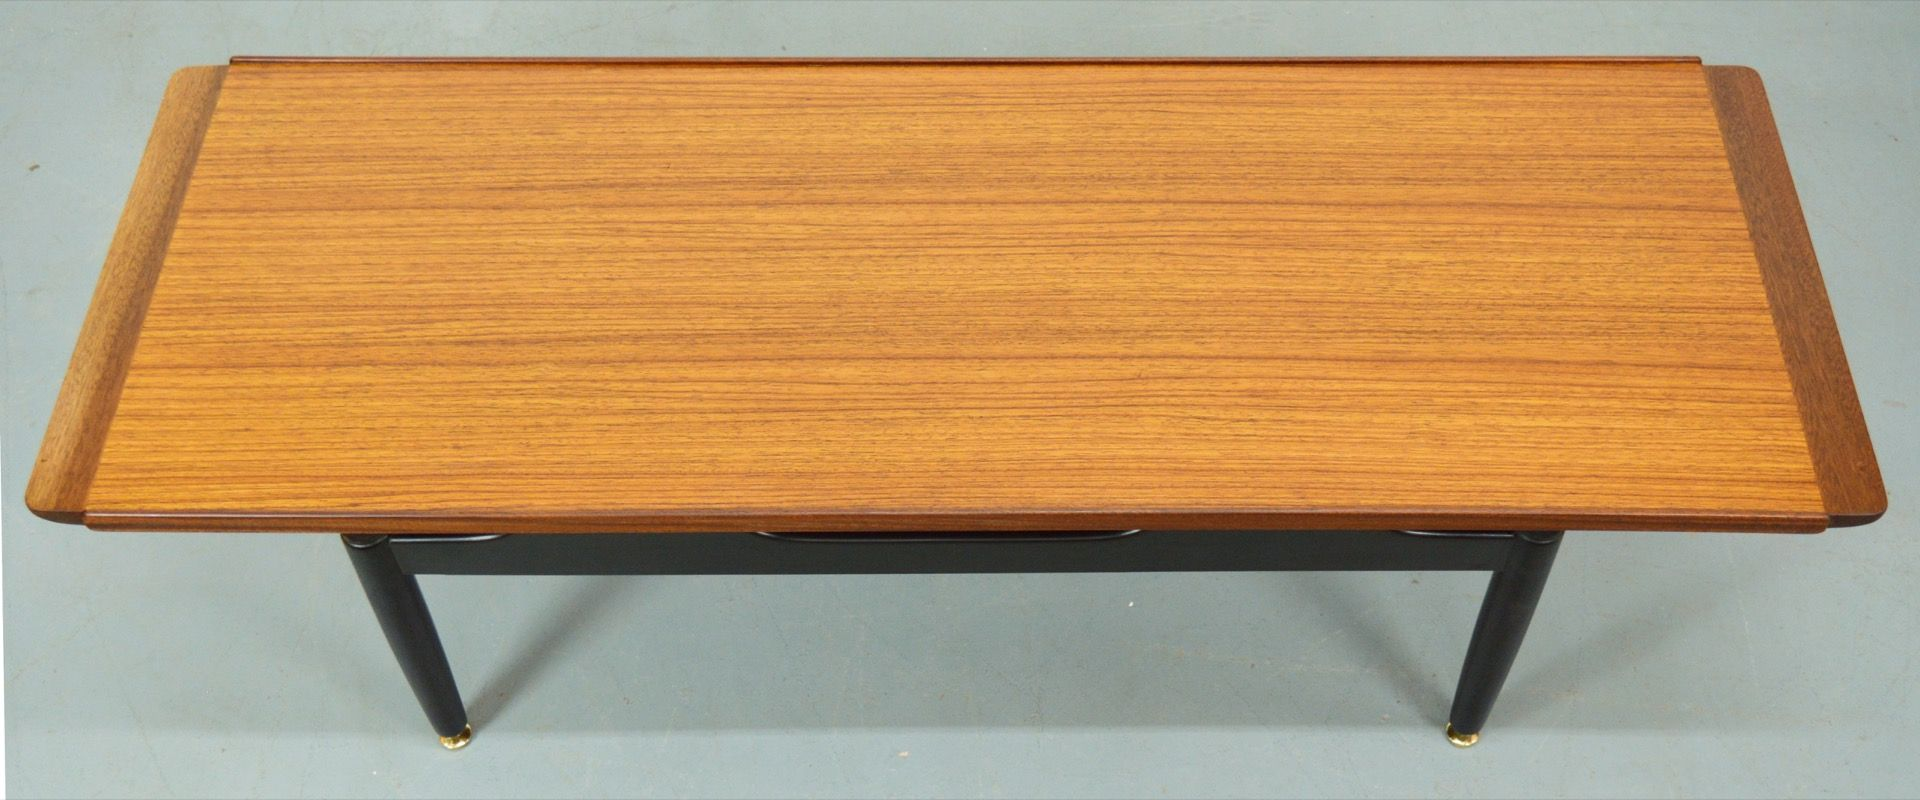 G Plan Fresco Dining Table Images Layer Vintage Teak